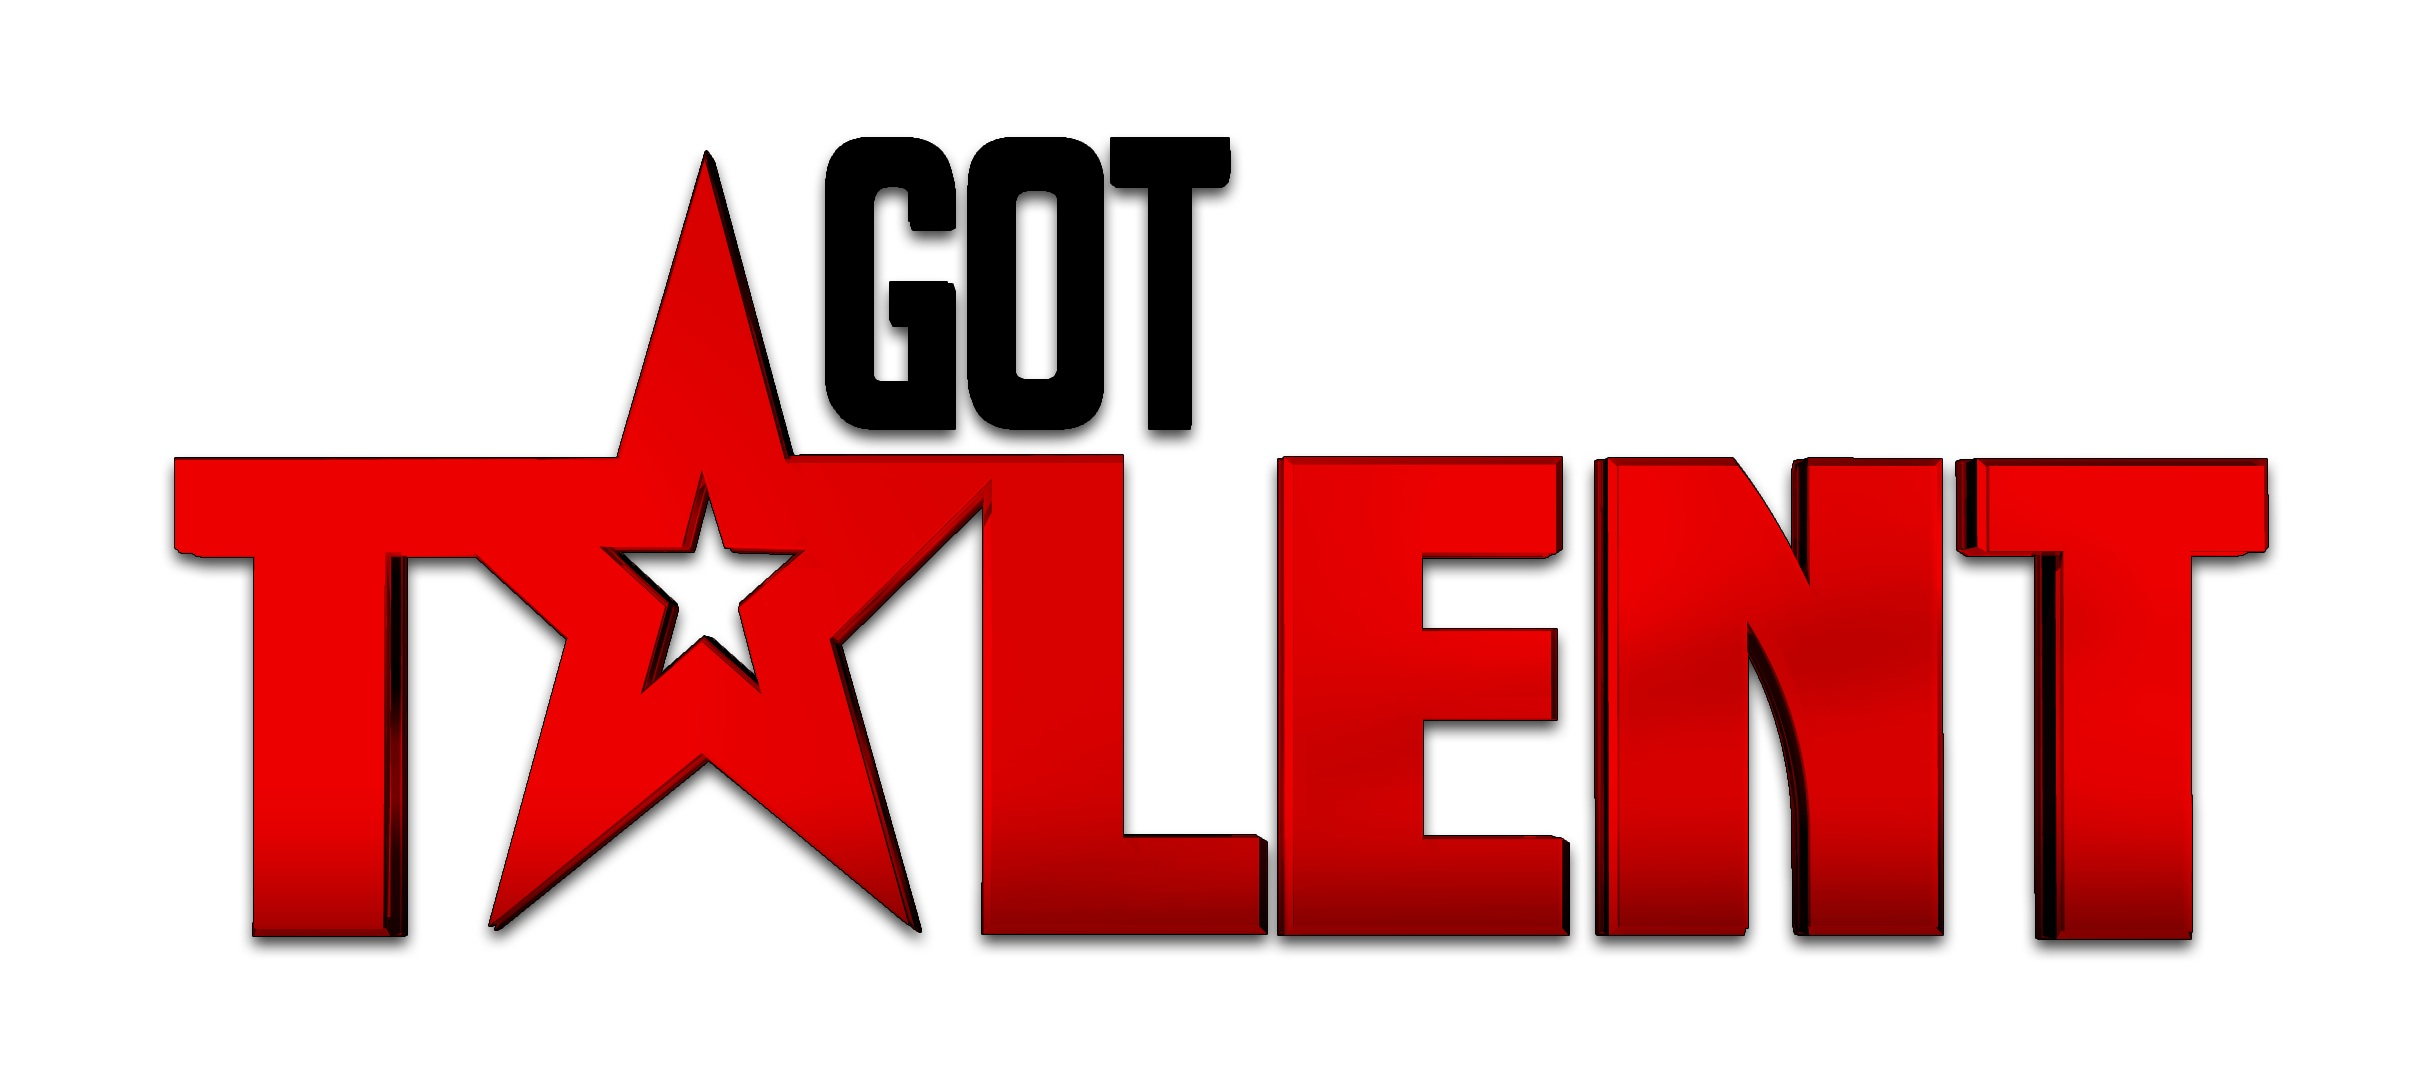 Got talent clipart.